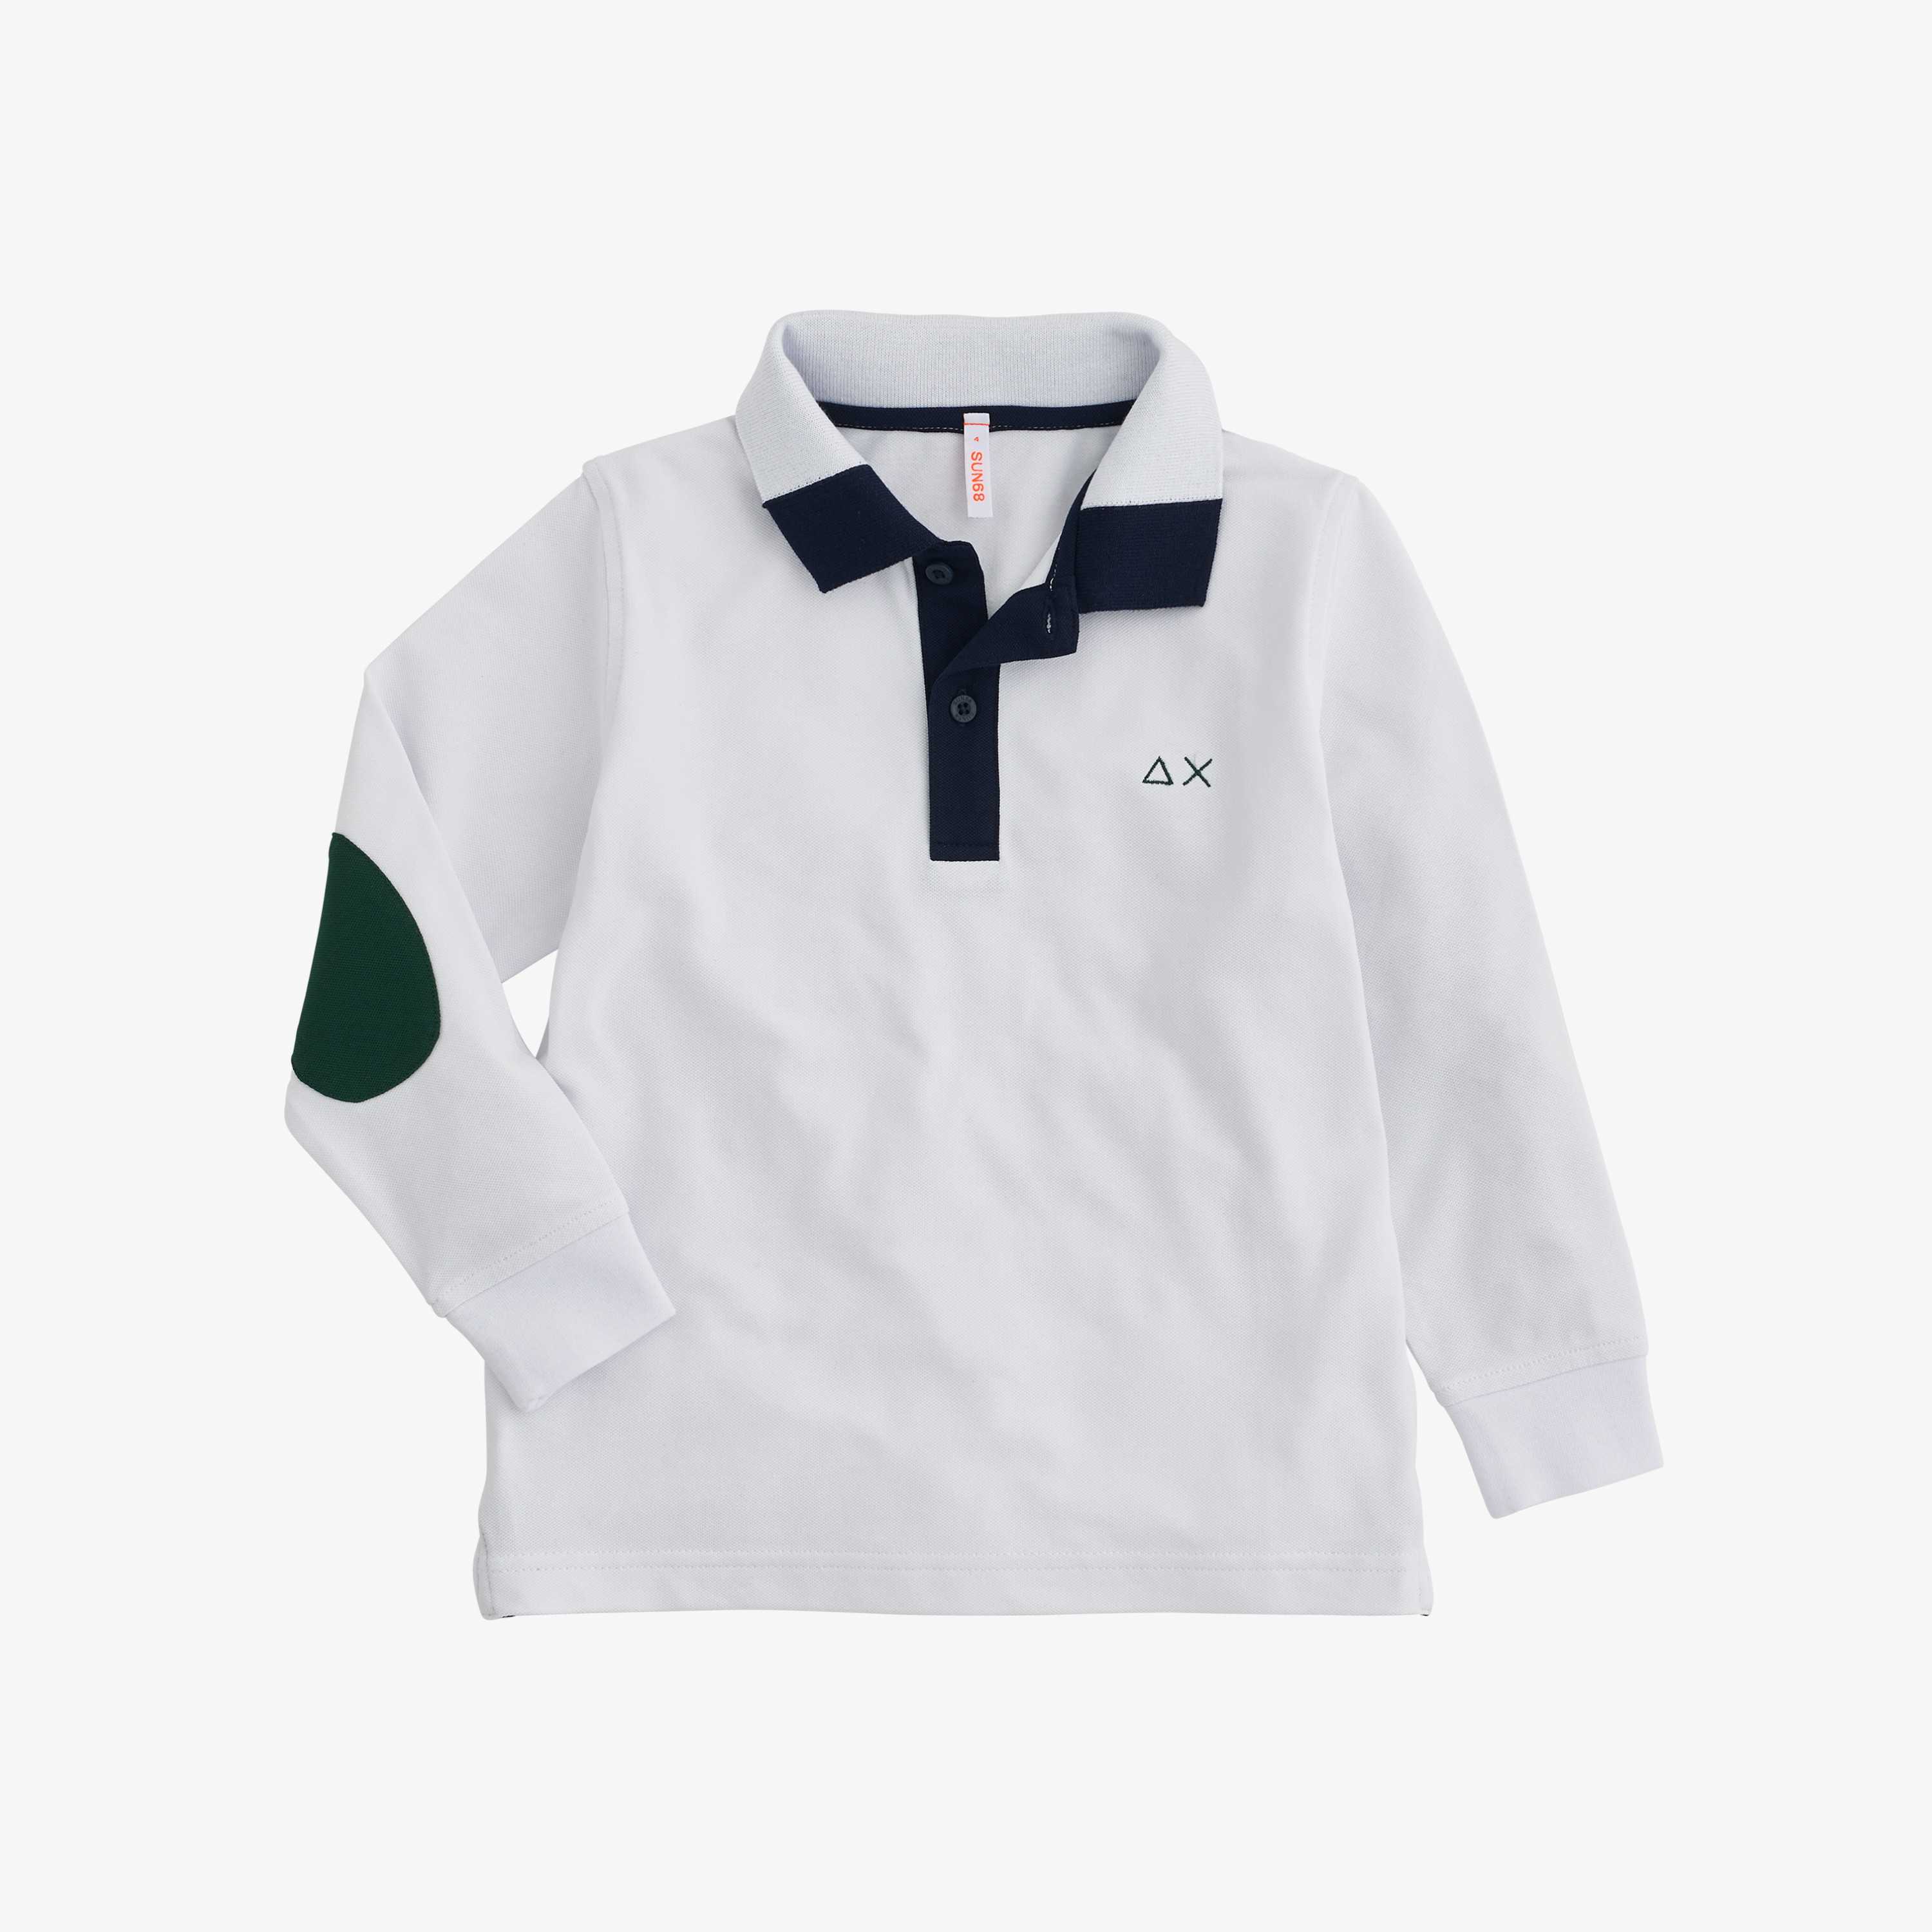 BOY'S POLO 3 CONTRAST ELBOW L/S WHITE